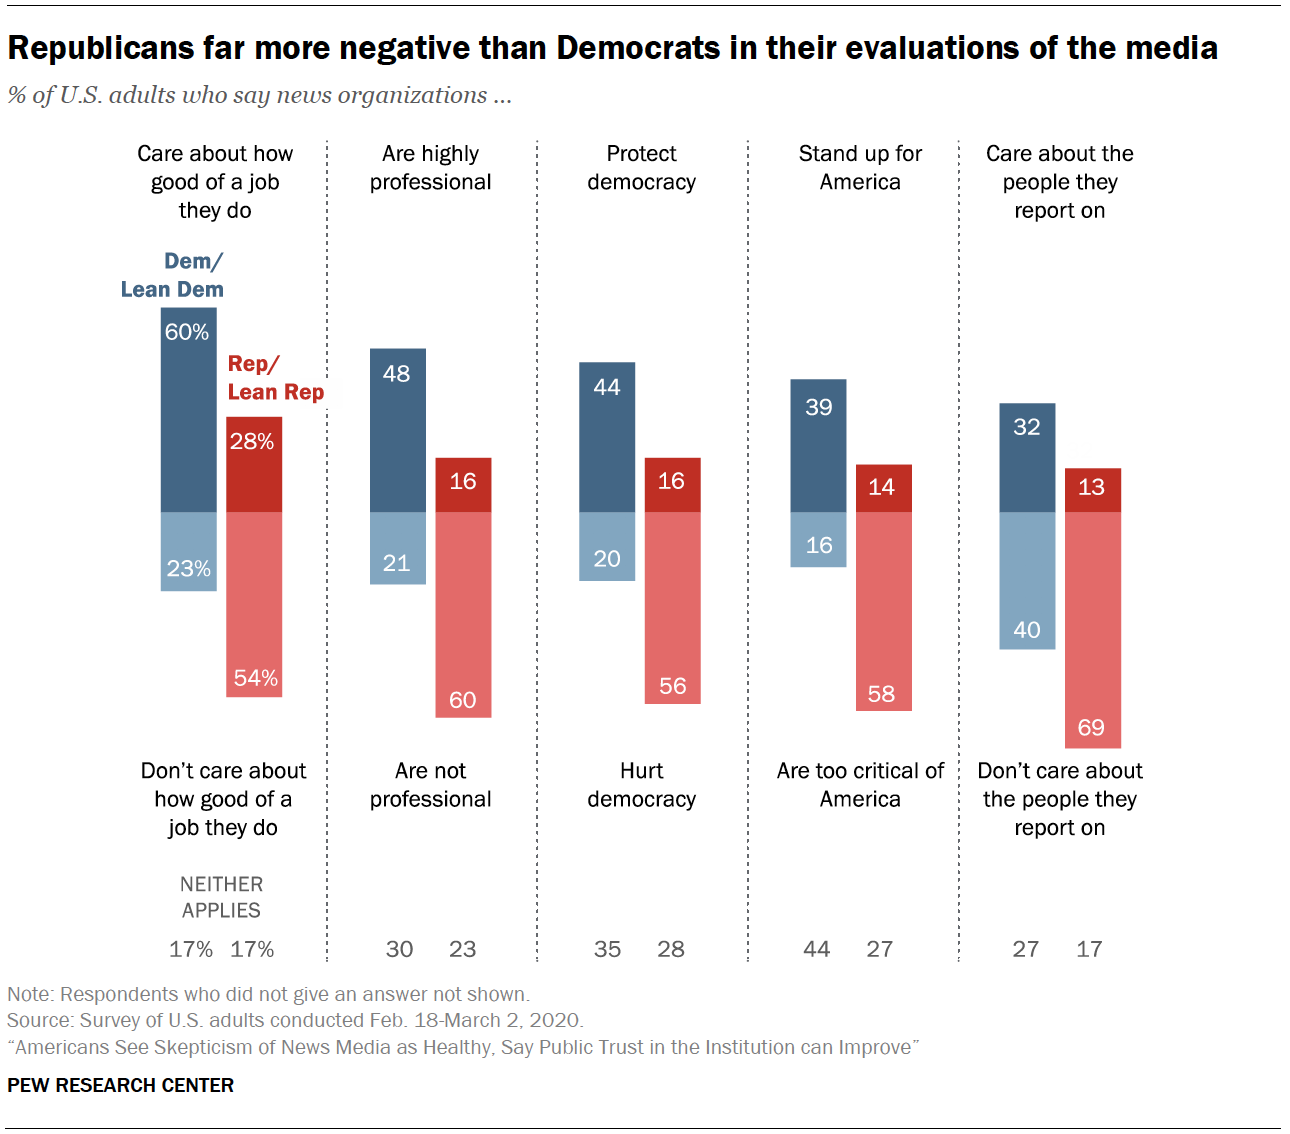 Republicans far more negative than Democrats in their evaluations of the media